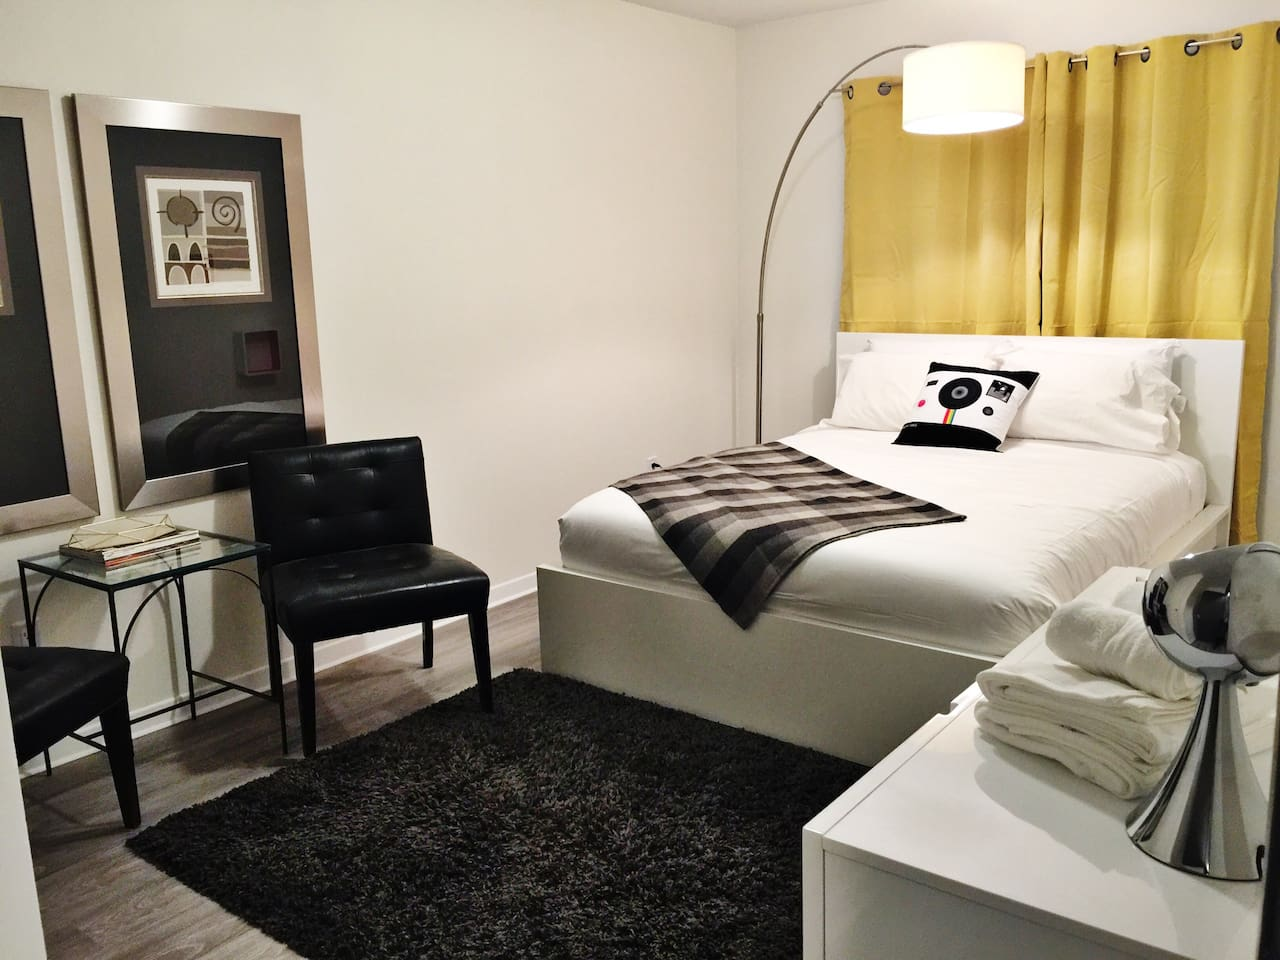 Bedroom #1 a spacious modern yet comfortable  room featuring a queen bed, 3 drawer dresser, closet, seating area, black-out blinds + quality linens. It is a cosy space perfect for 2 guests to call home.